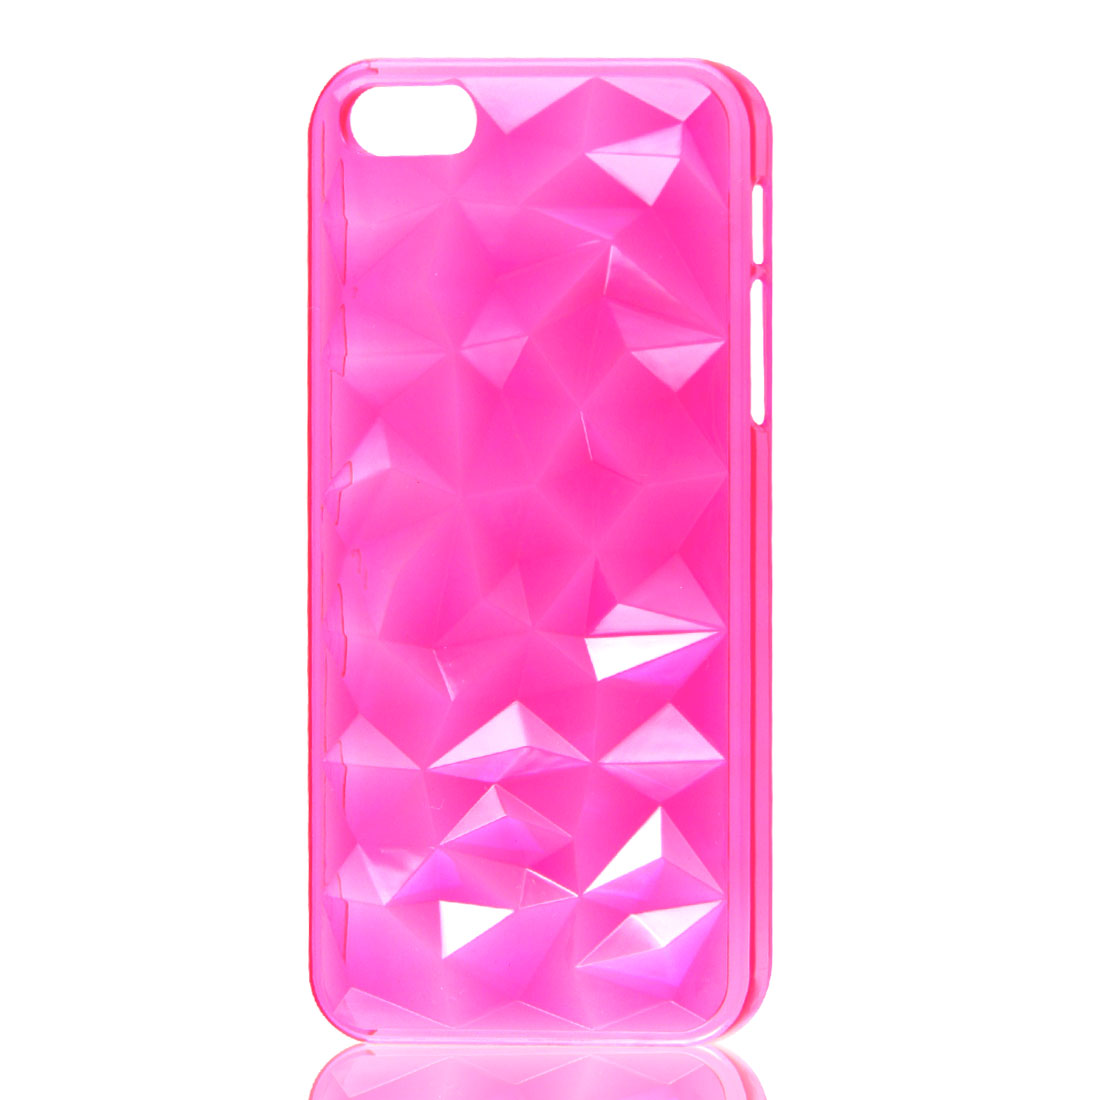 3D Water Cube Hot Pink Hard Back Case Cover Protector for iPhone 5 5G